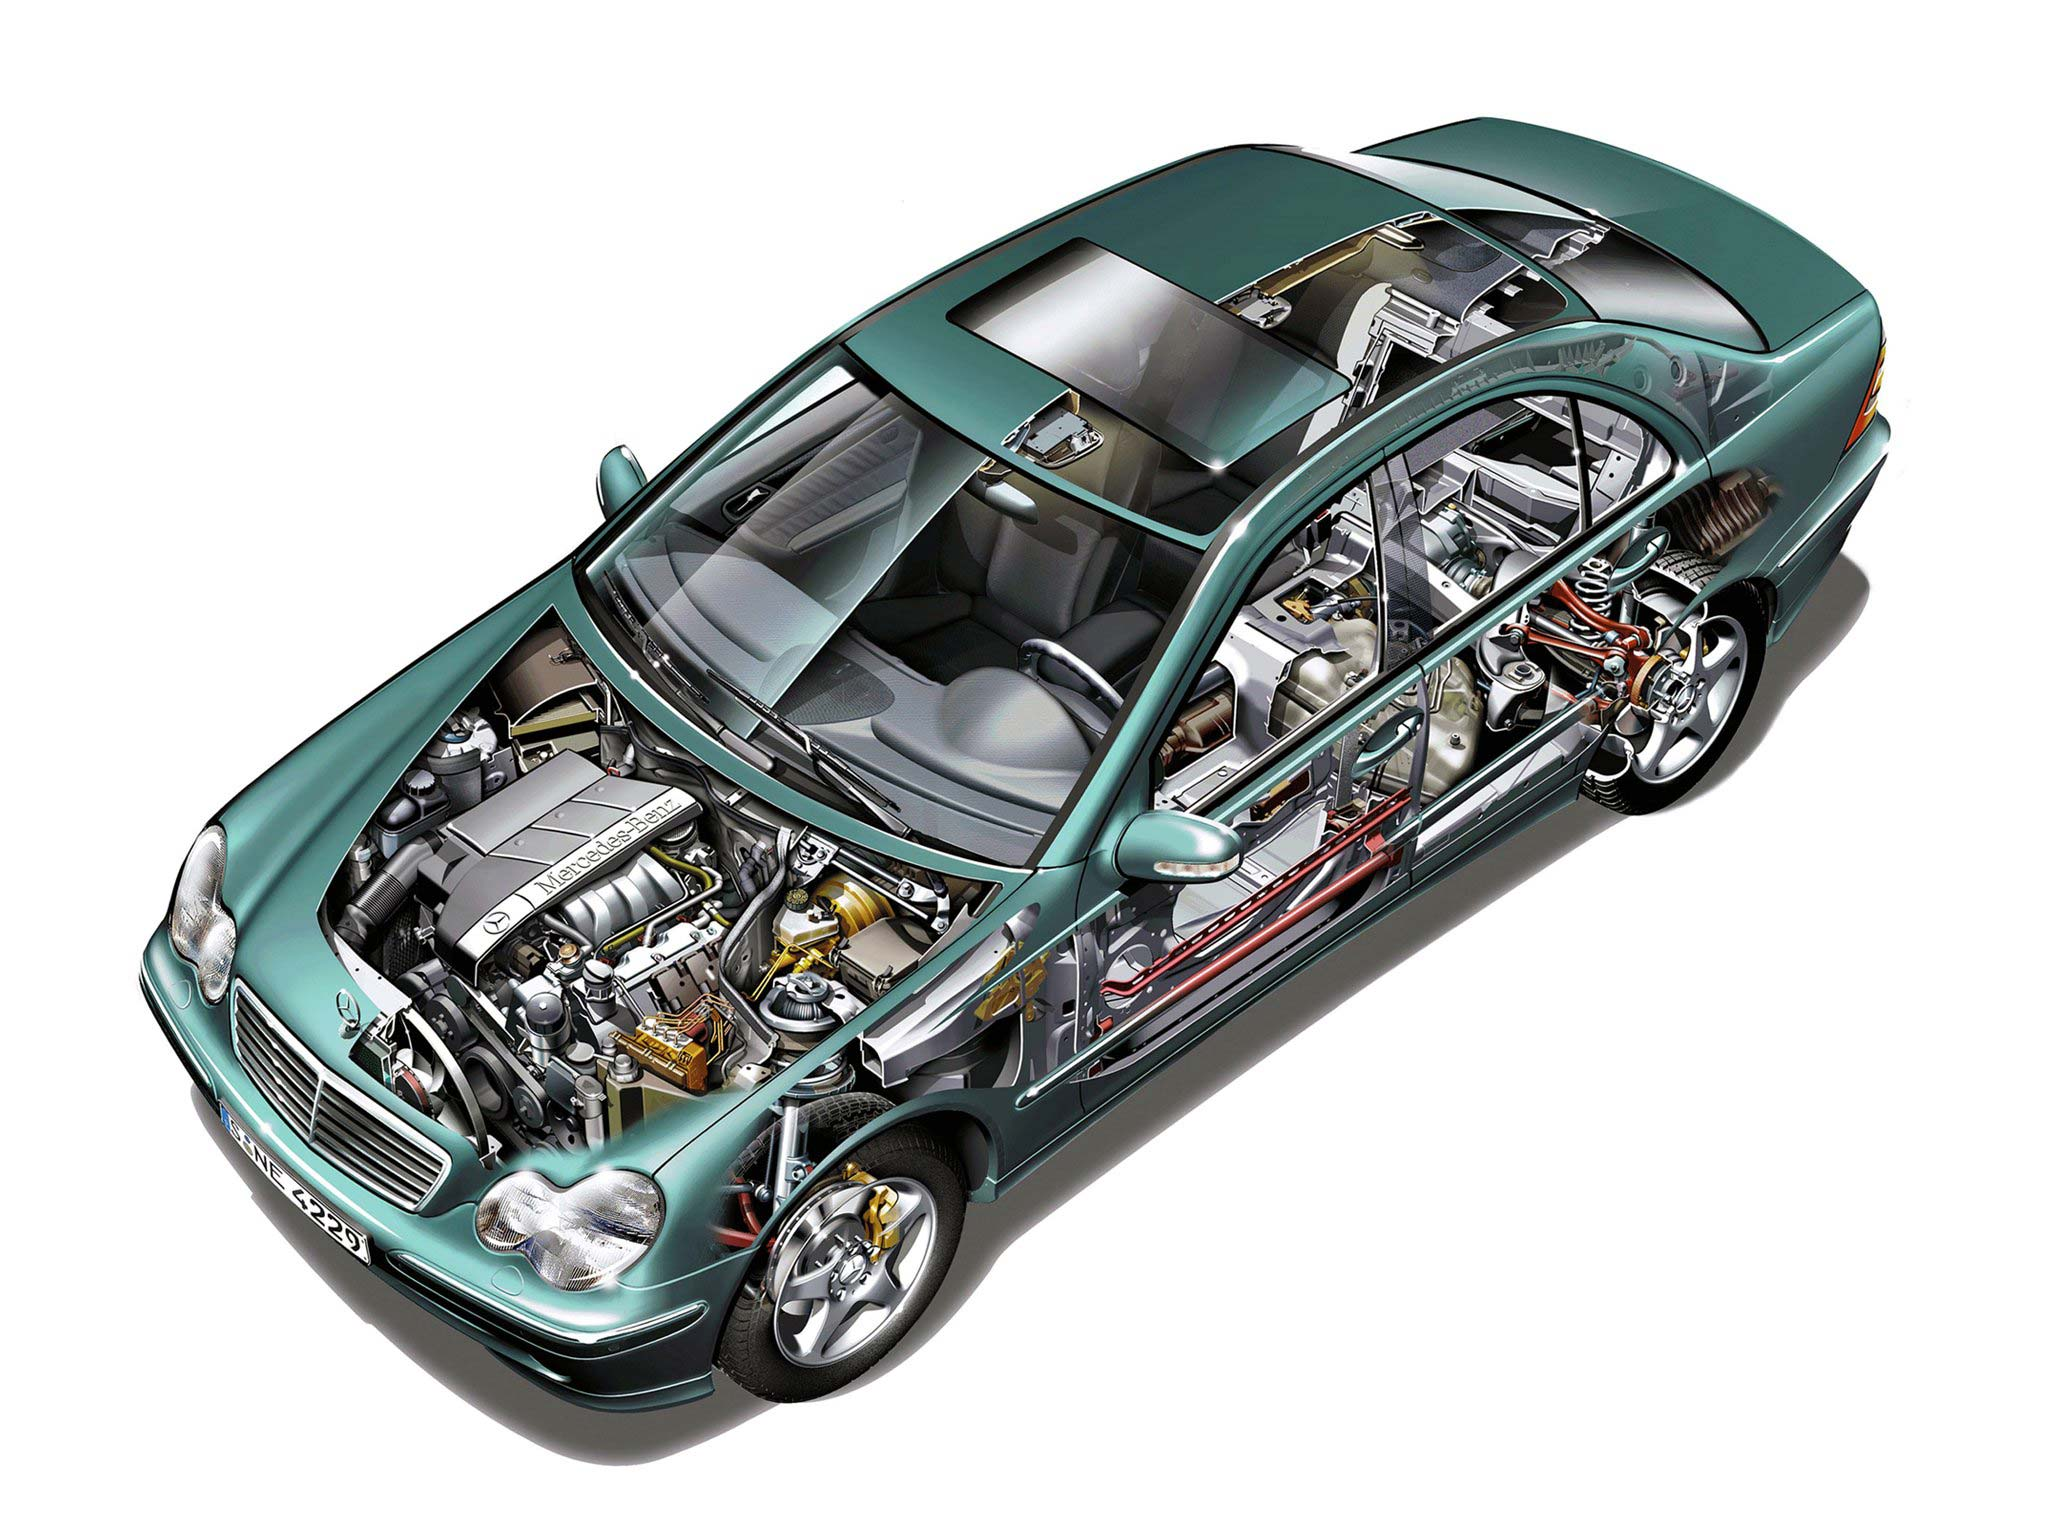 Mercedes-Benz C-Class cutaway drawing